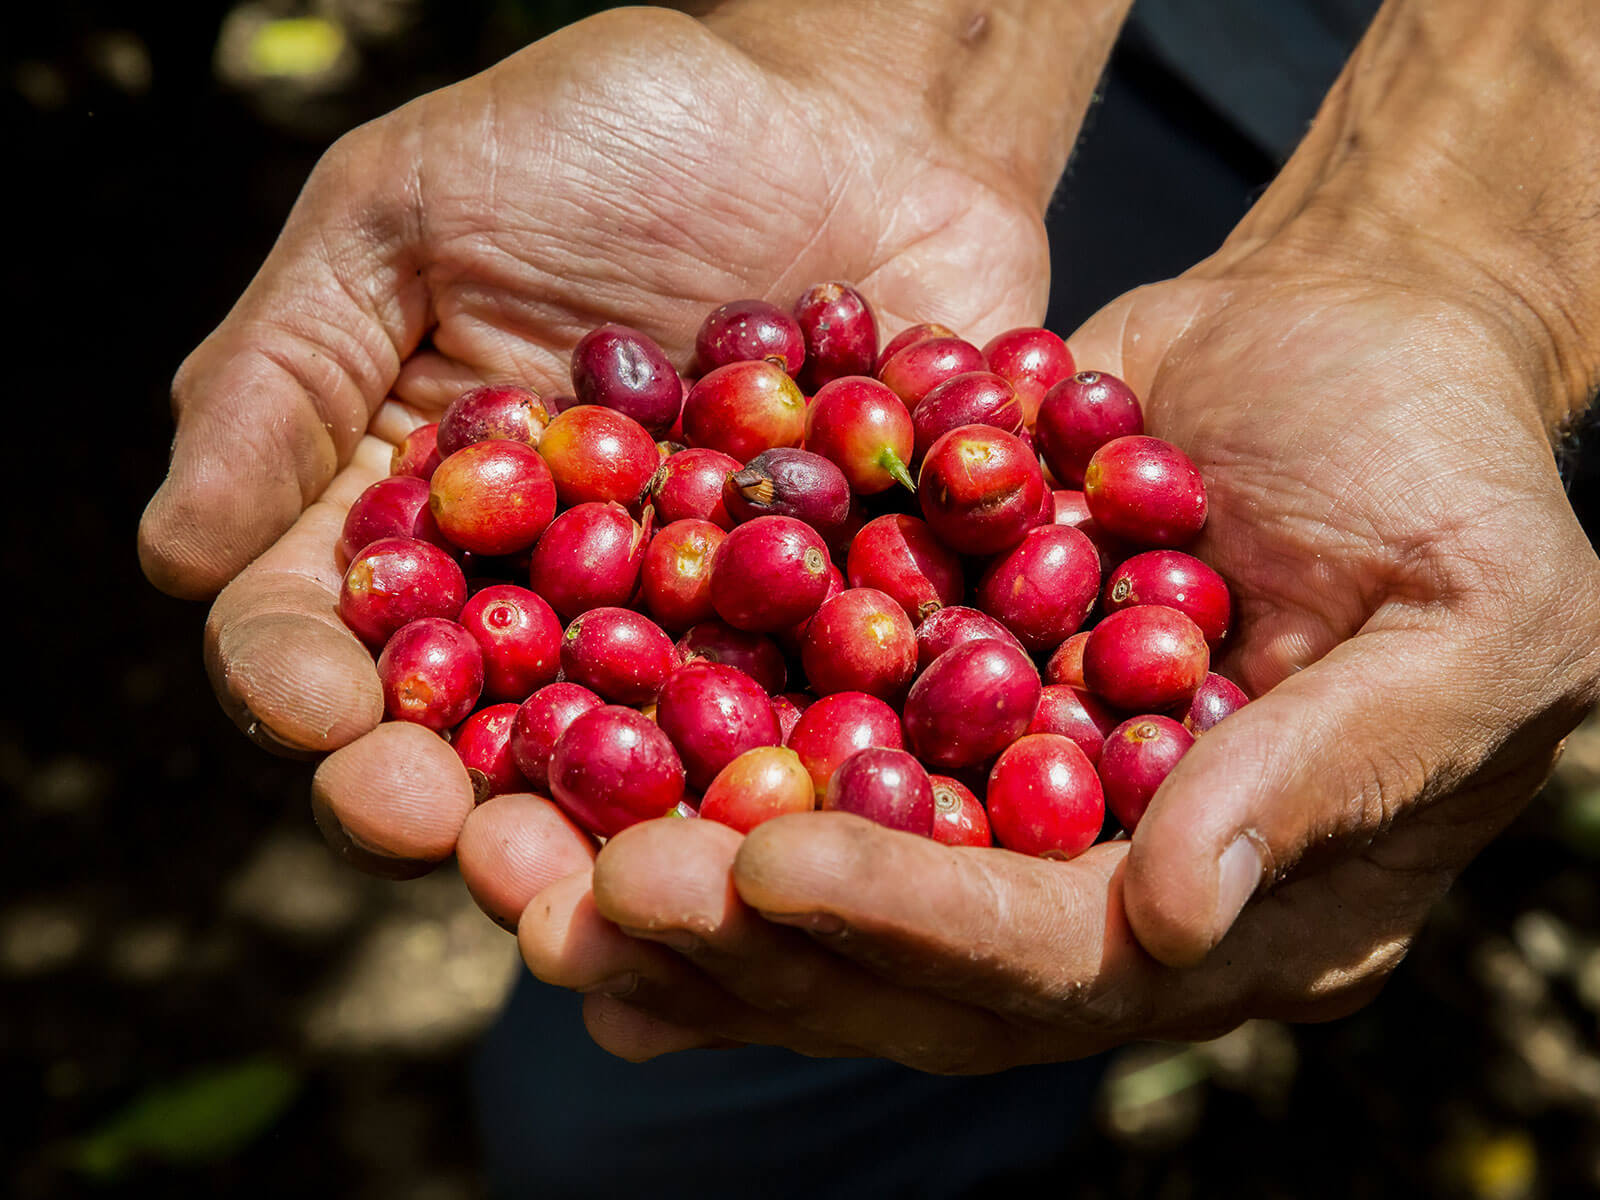 Coffee cherries in hands